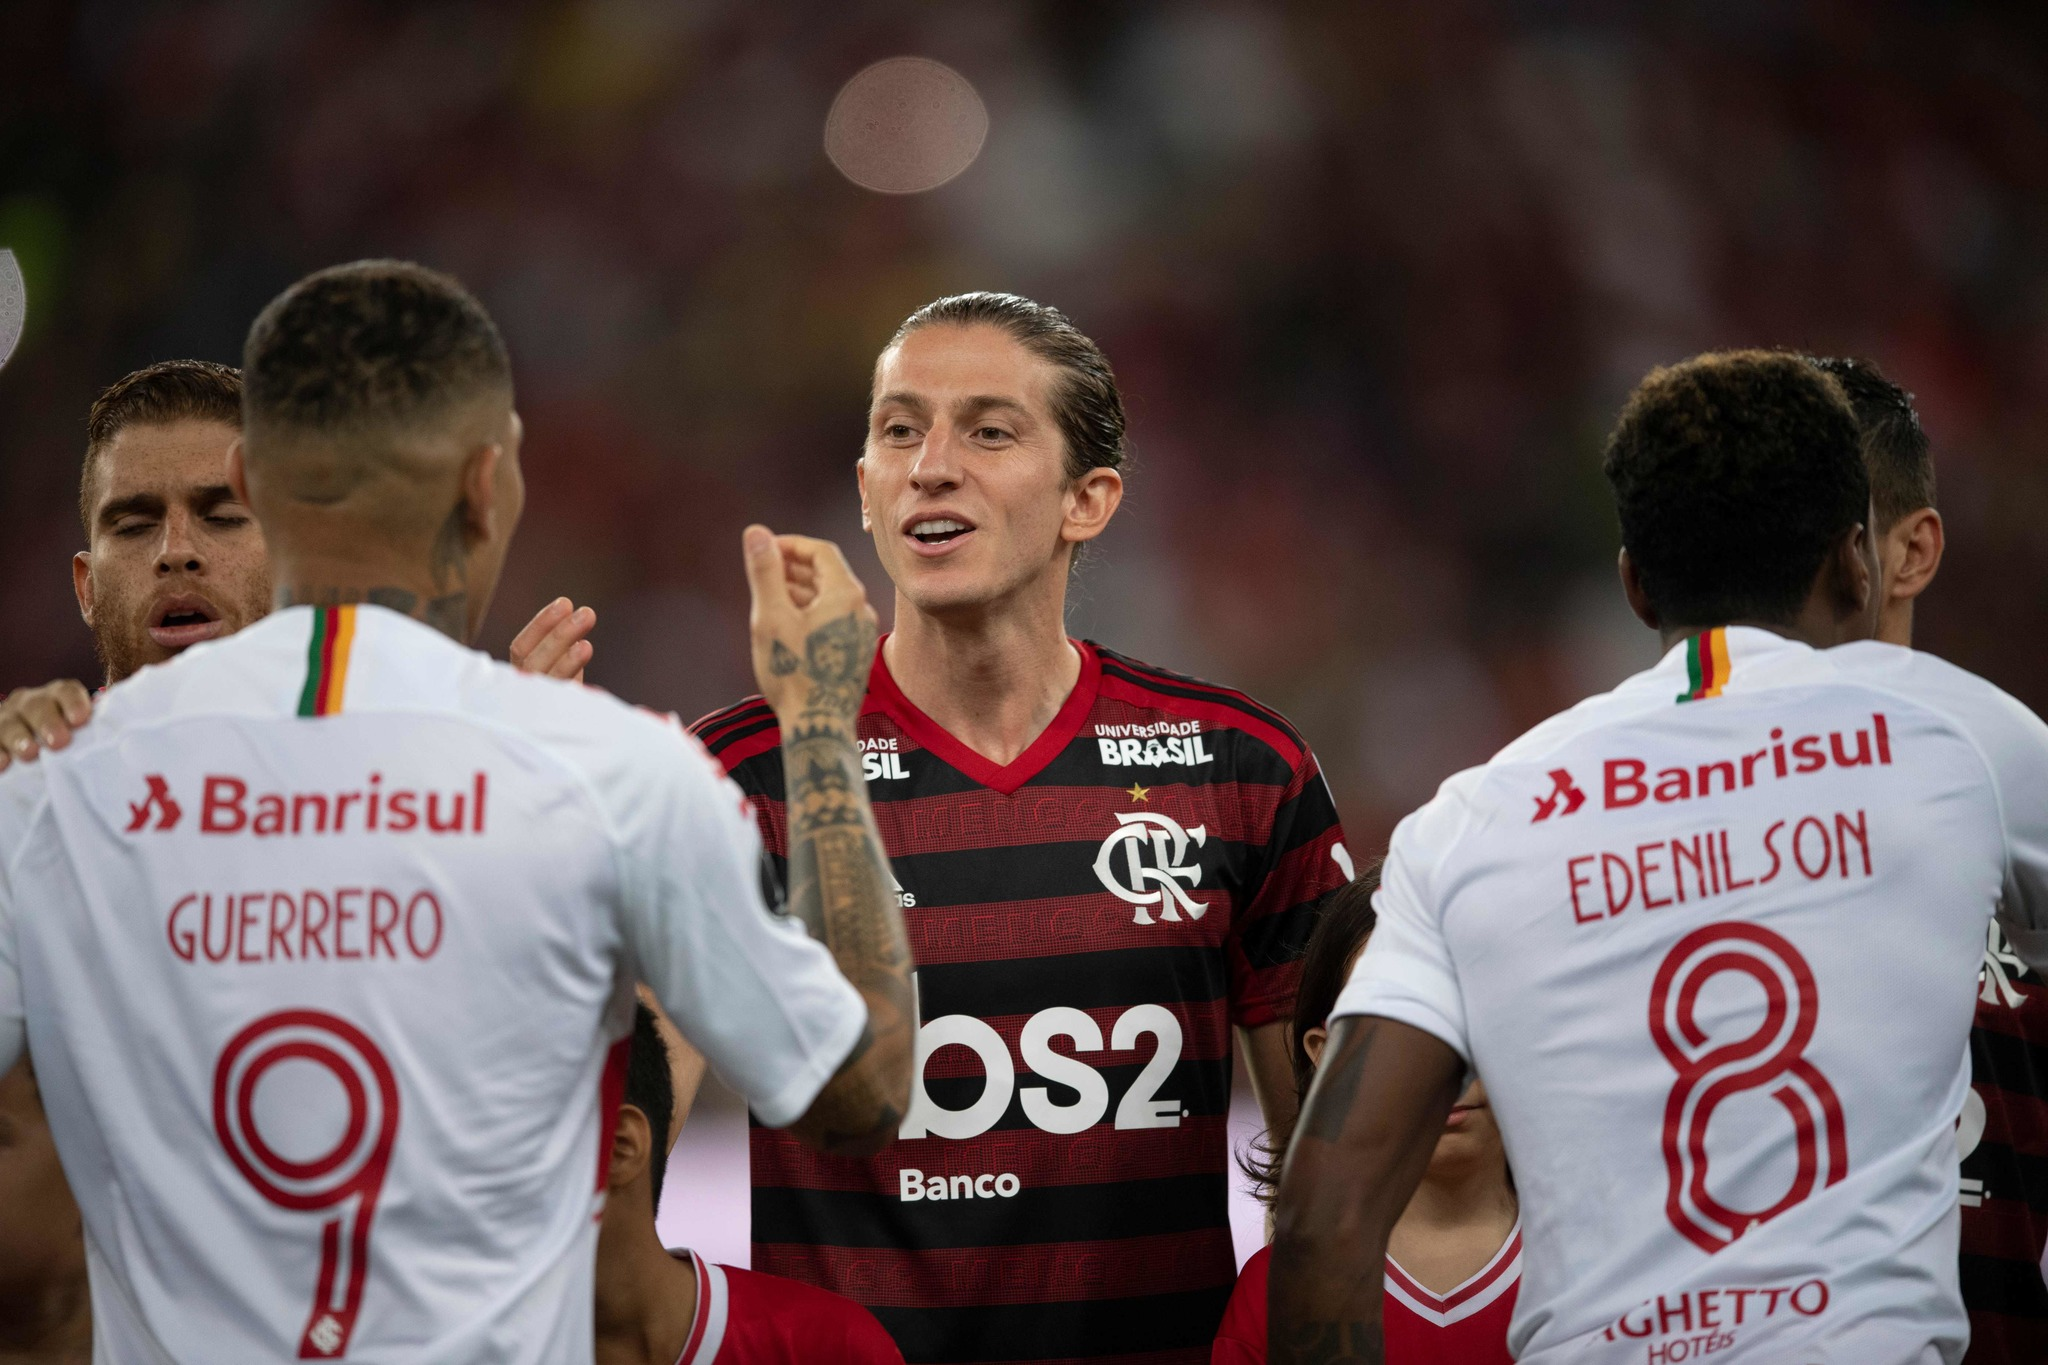 Brazils Flamengo team player <HIT>Filipe</HIT><HIT>Luis</HIT> (C) greets Brazils Internacional player Paolo Guerrero (L) during a 2019 Copa Libertadores football match at the Maracana stadium in Rio de Janeiro, Brazil, on August 21, 2019. (Photo by MAURO PIMENTEL / AFP)